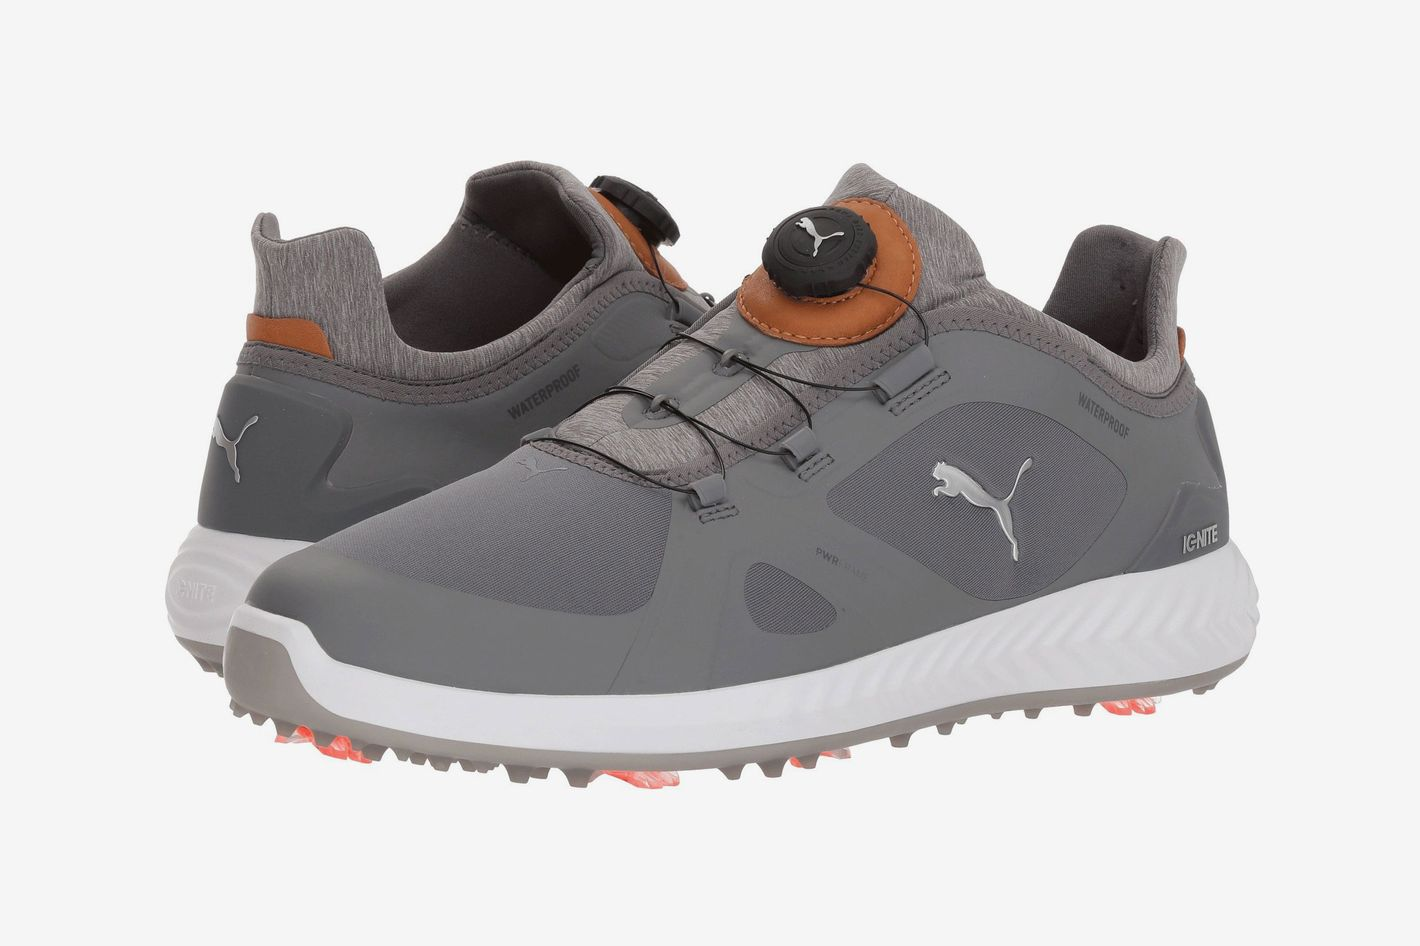 Puma Ignite Power Adapt Disc Golf Shoes